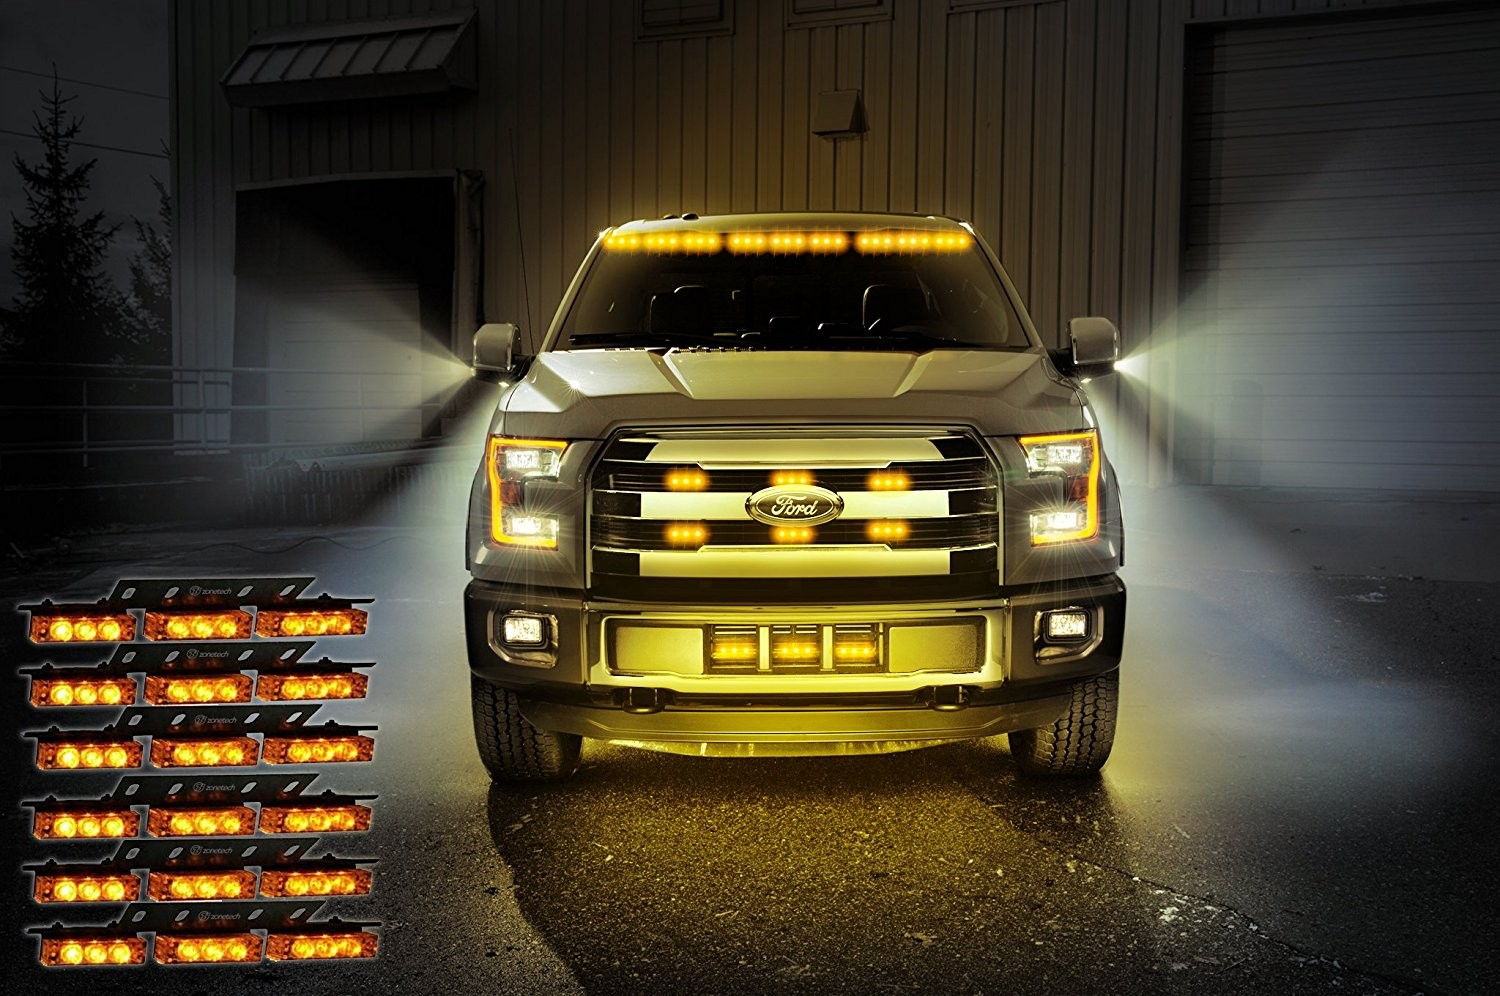 Auto Accessories Headlight Bulbs Car Gifts Zone Tech Amber Led Emergency Service Vehicle